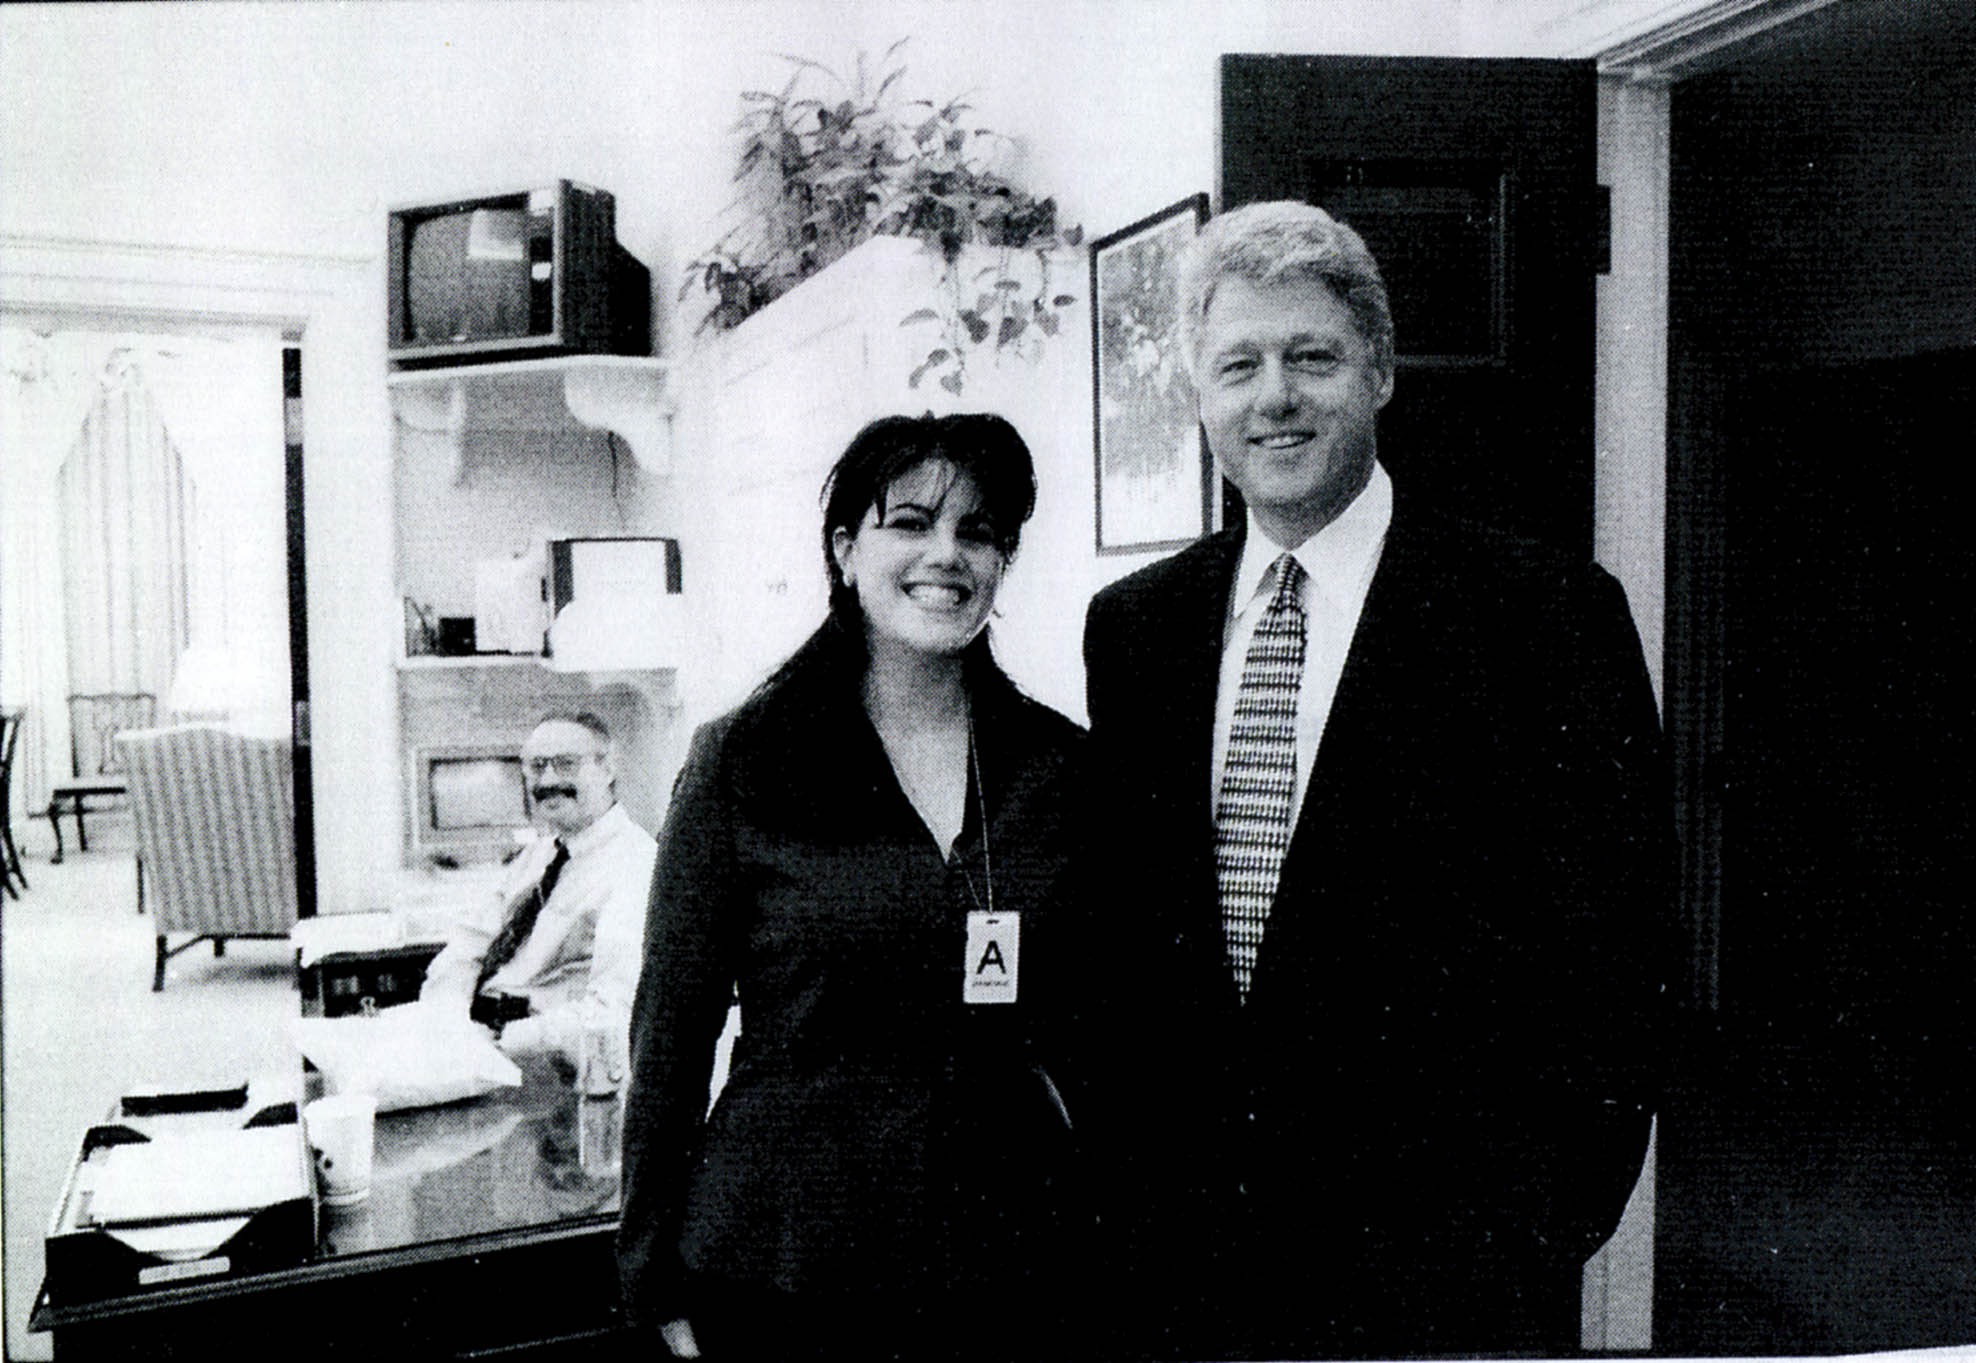 American Crime Story season 3 to tackle Bill Clinton impeachment and Monica Lewinsky scandal